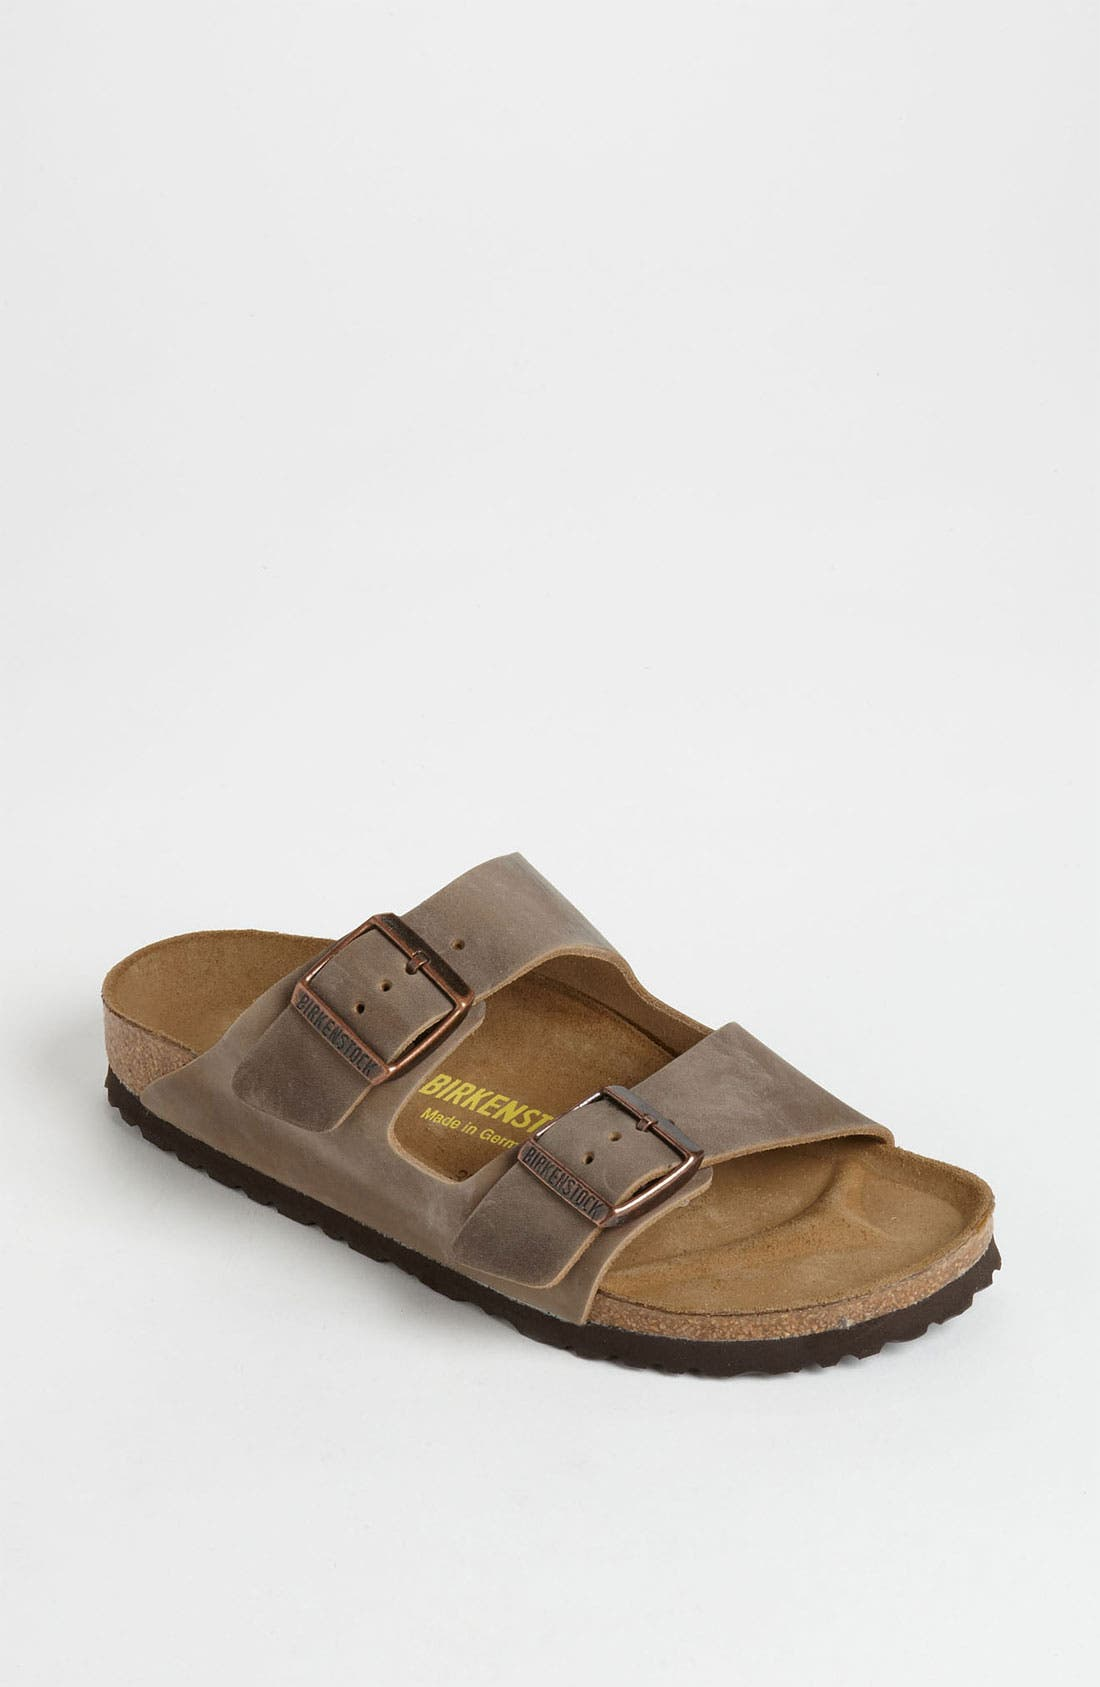 Main Image - Birkenstock Arizona Sandal (Women)